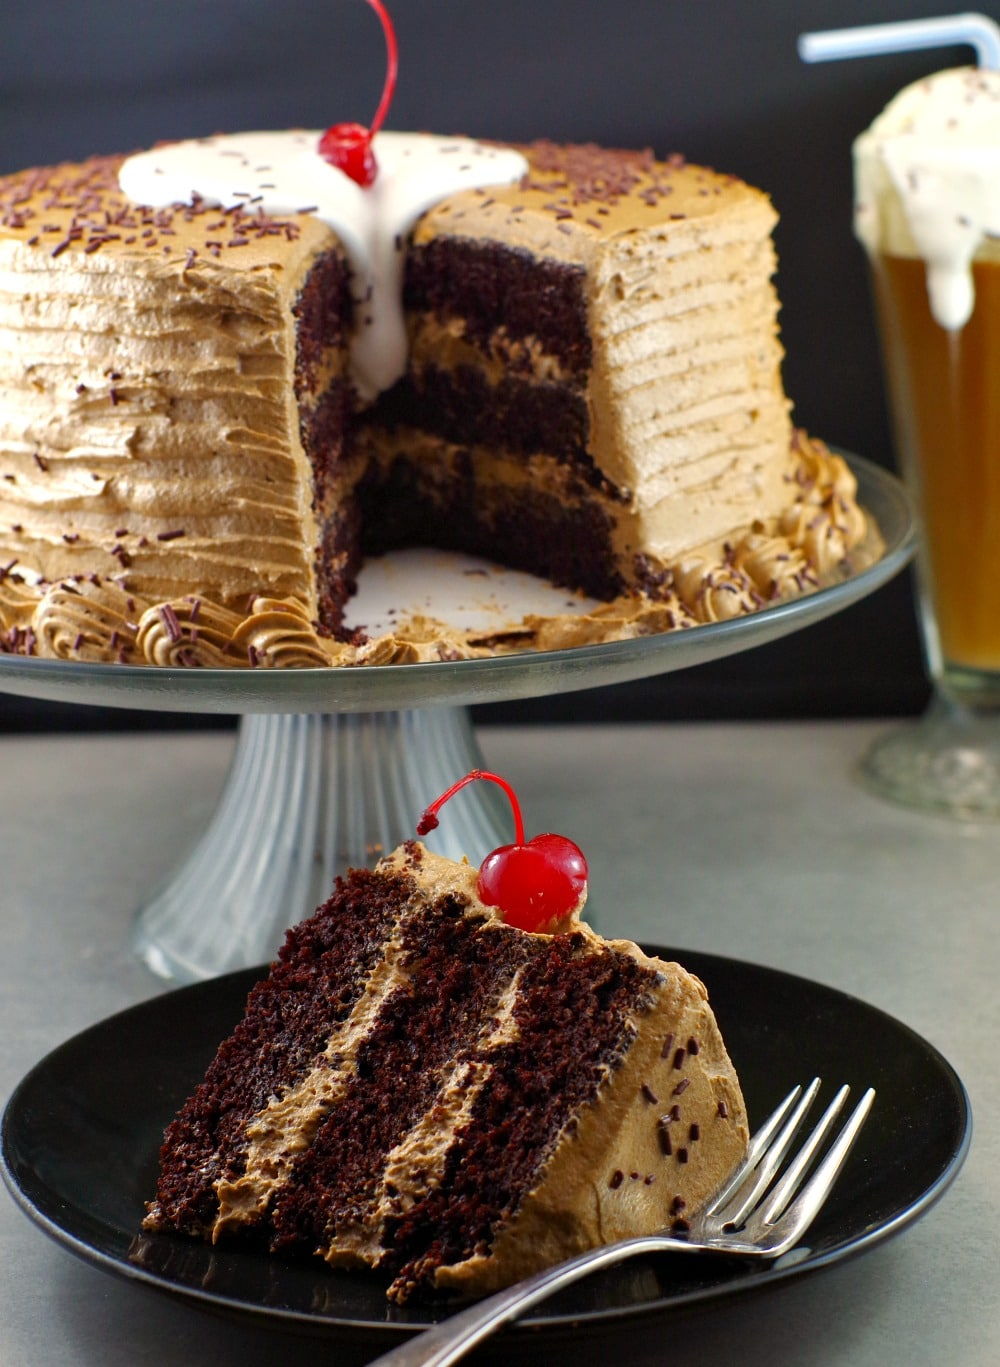 root beer, root beer float, root beer float cake, root beer cake, root beer flat cake recipe